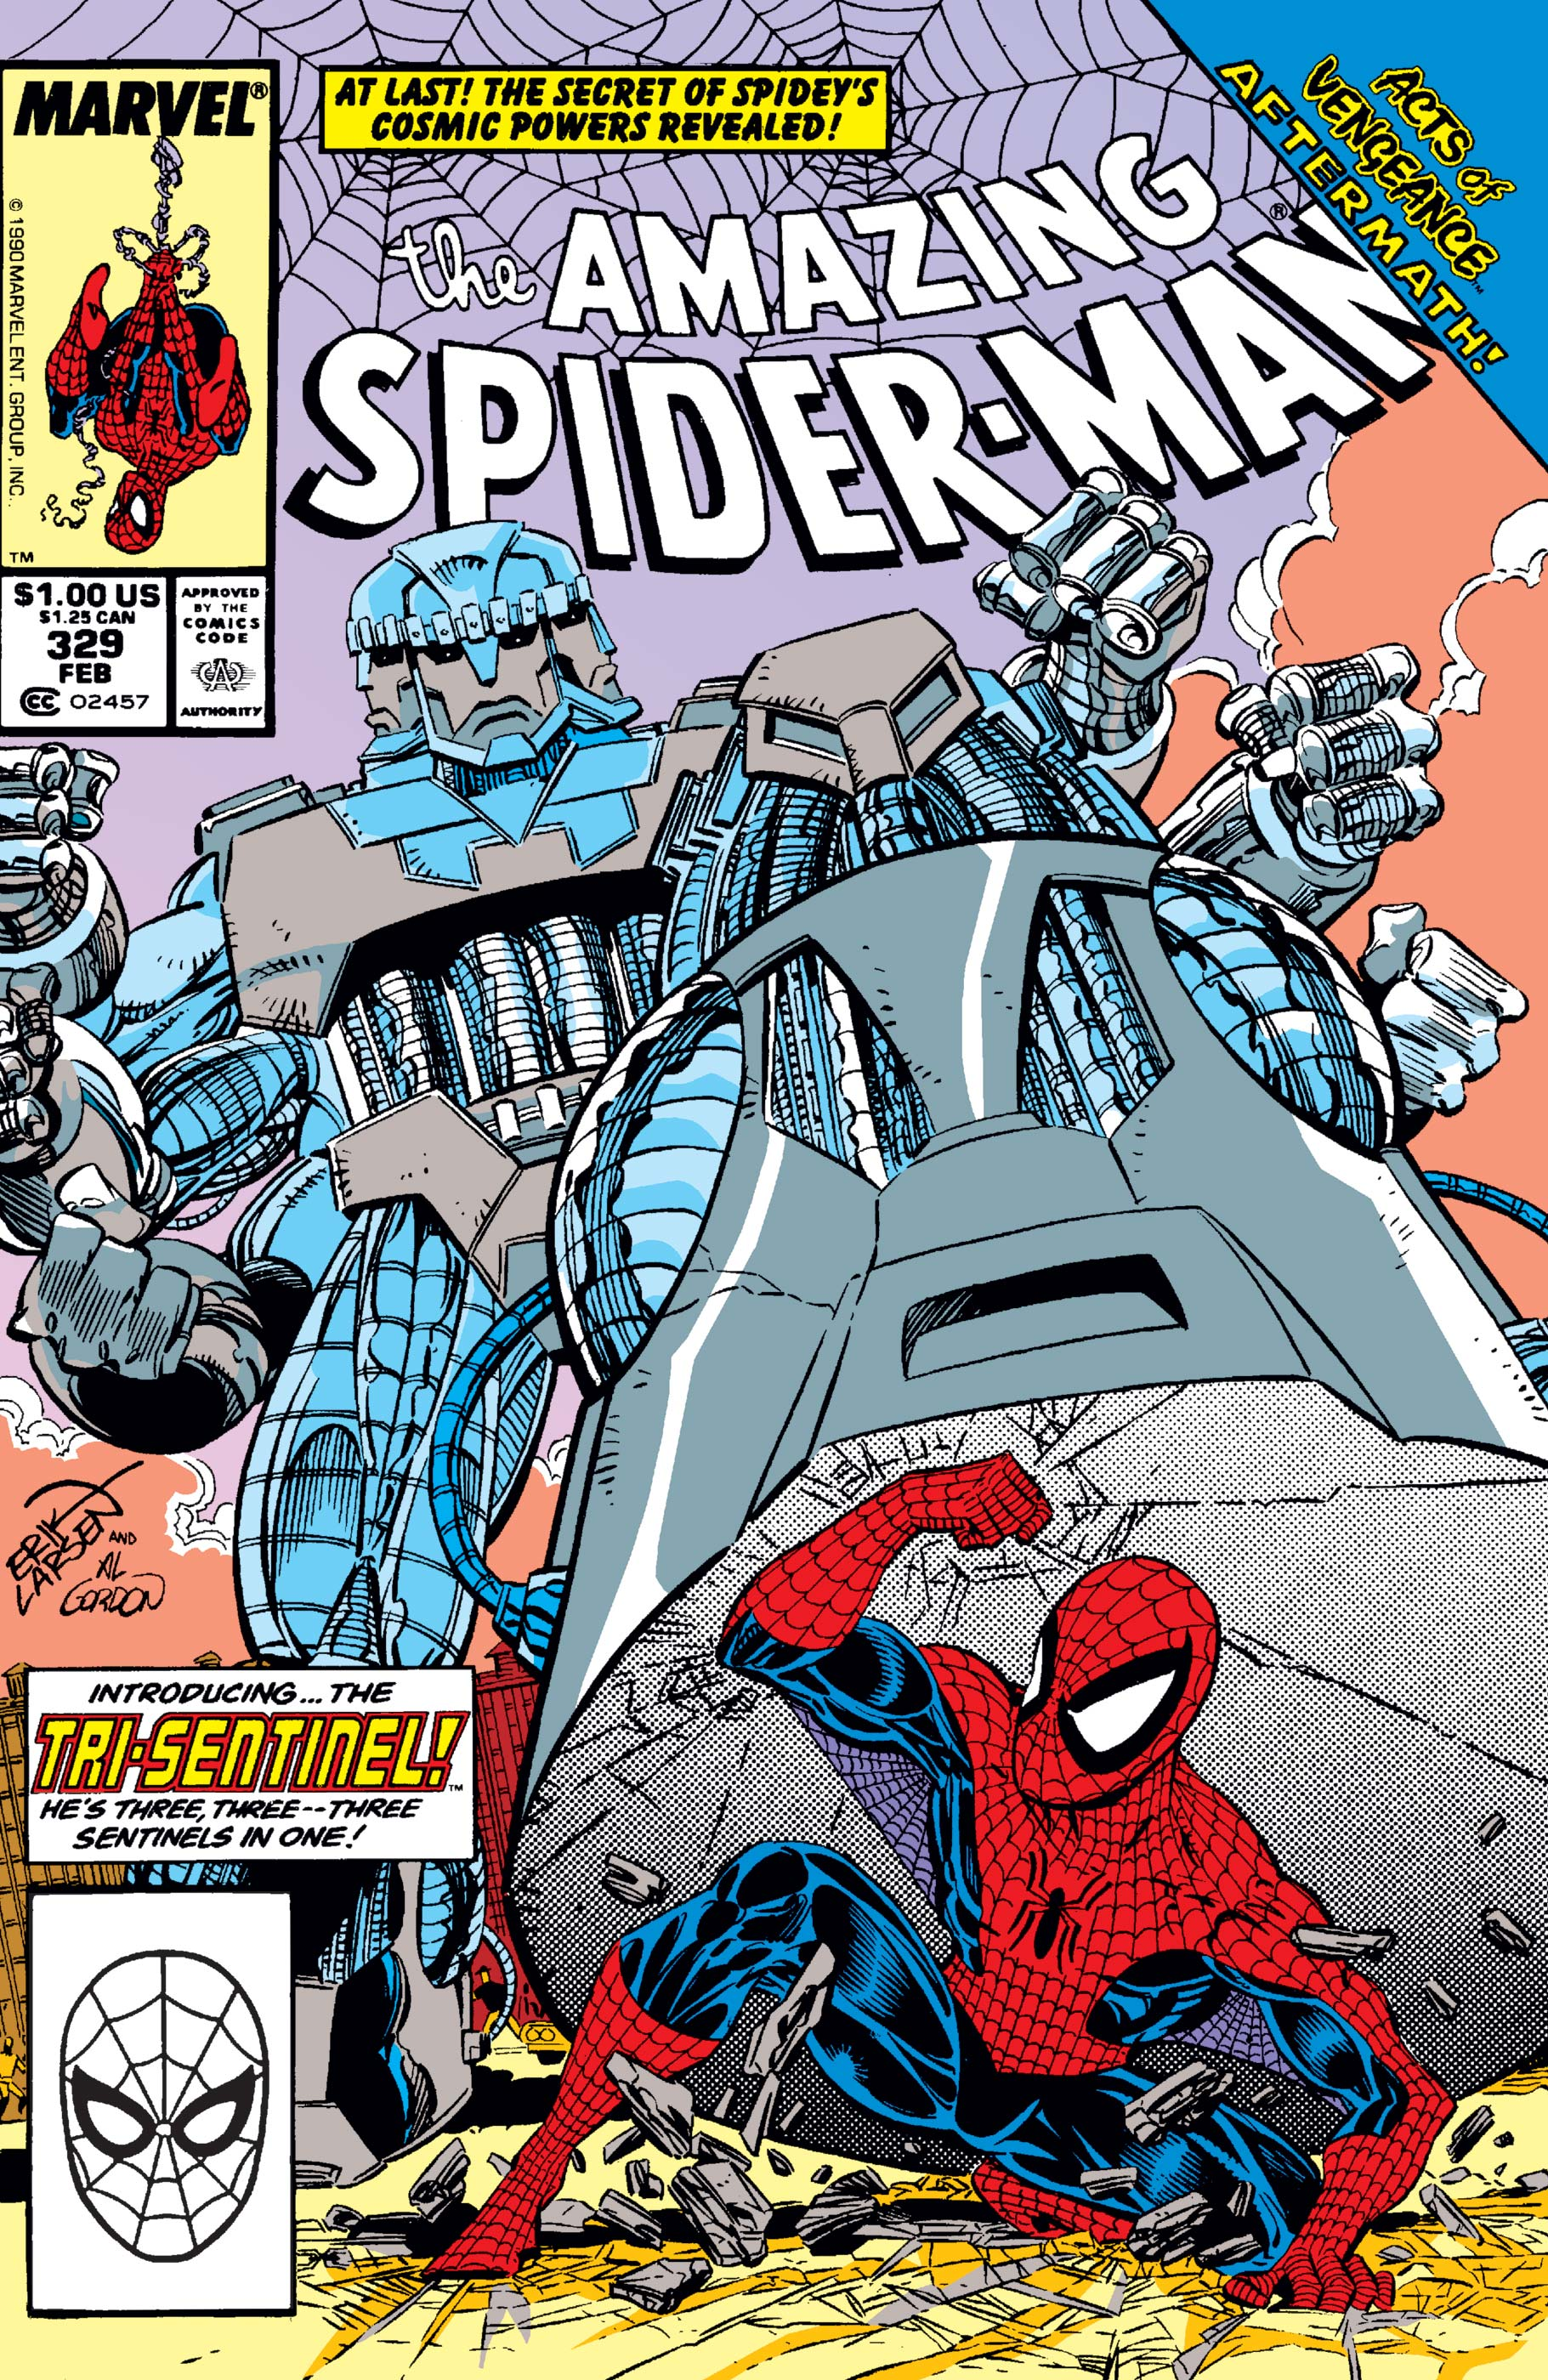 The Amazing Spider-Man (1963) #329